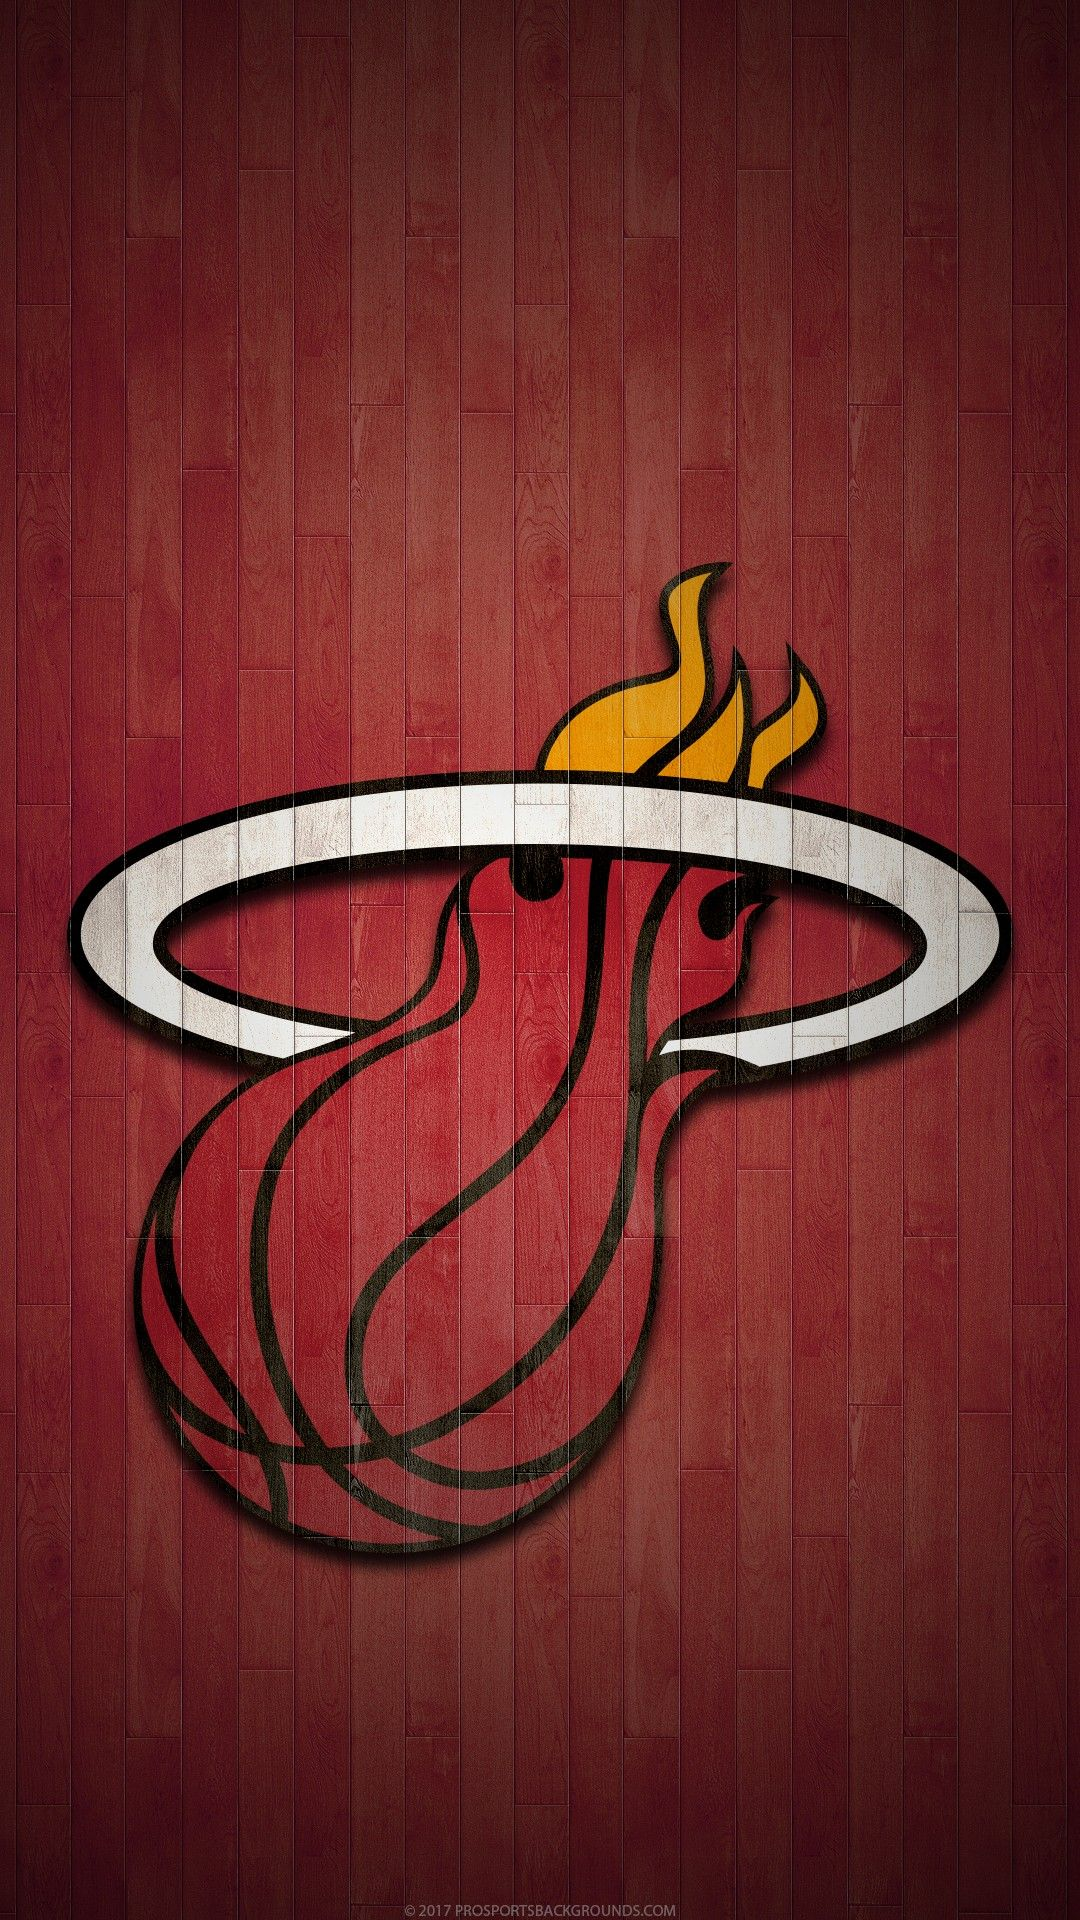 Best Of Miami Heat Wallpaper Iphone 6 Basketball Players Nba Miami Heat Nba Wallpapers